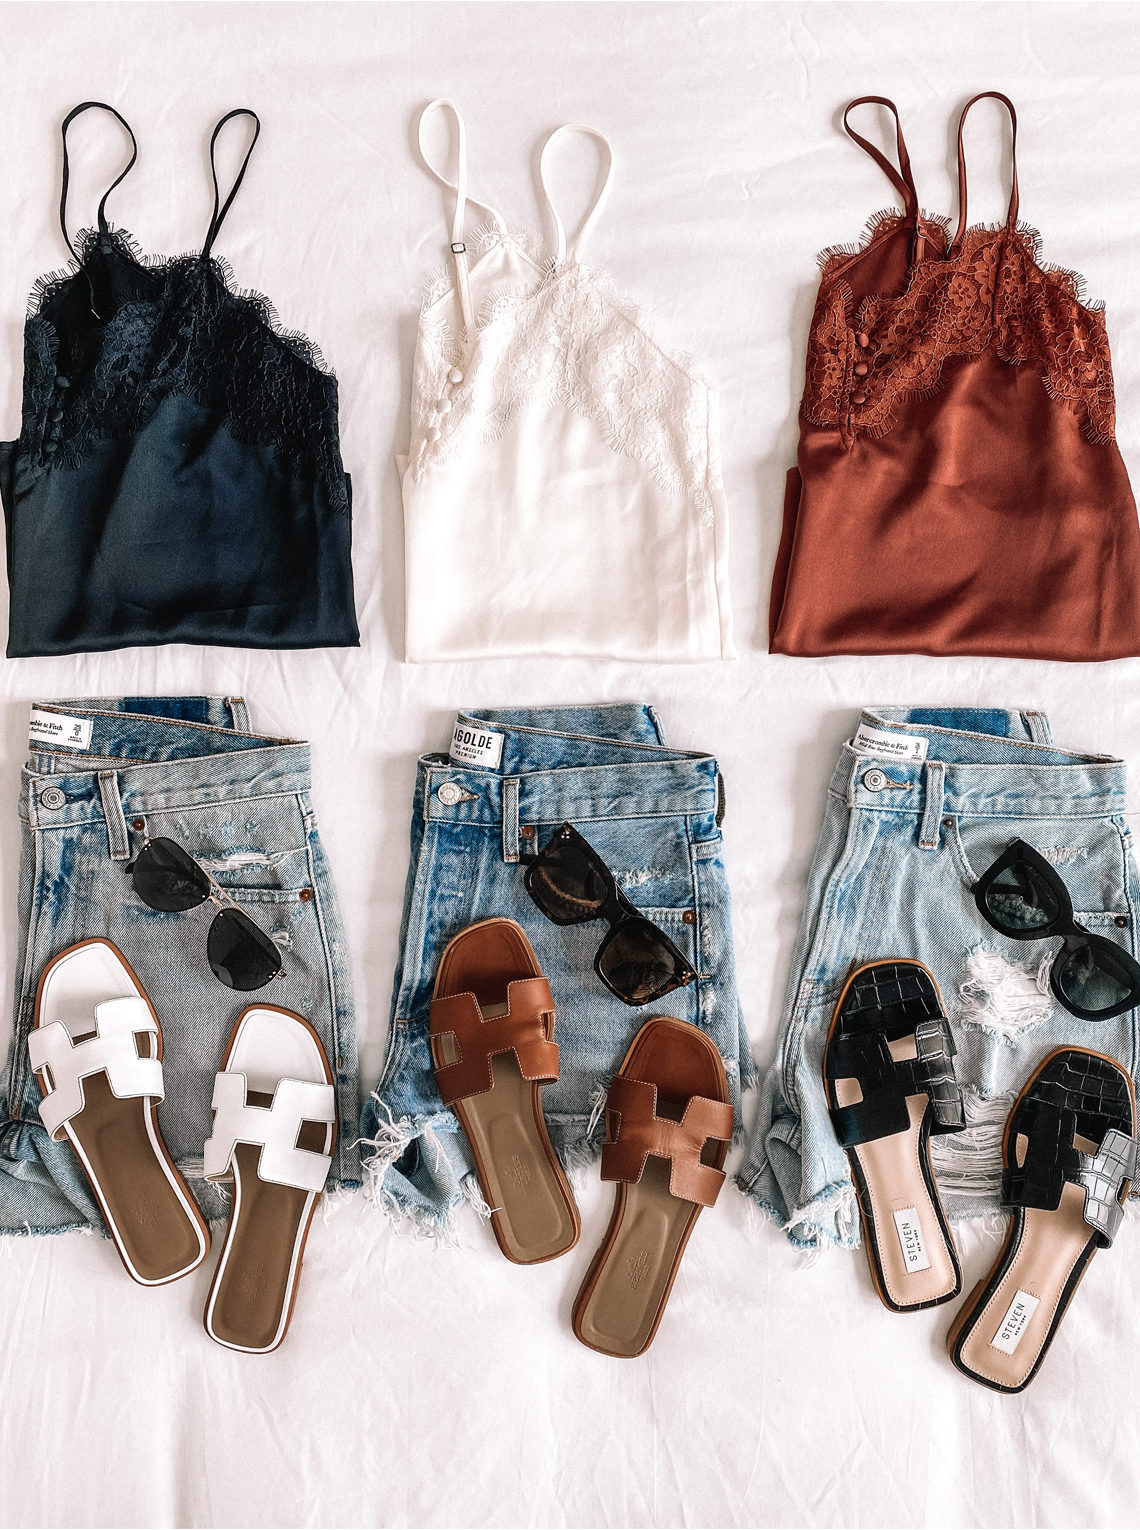 Fashion Jackson Abercombie Lace Camis Denim Shorts Sandals Jean Shorts Summer Outfit